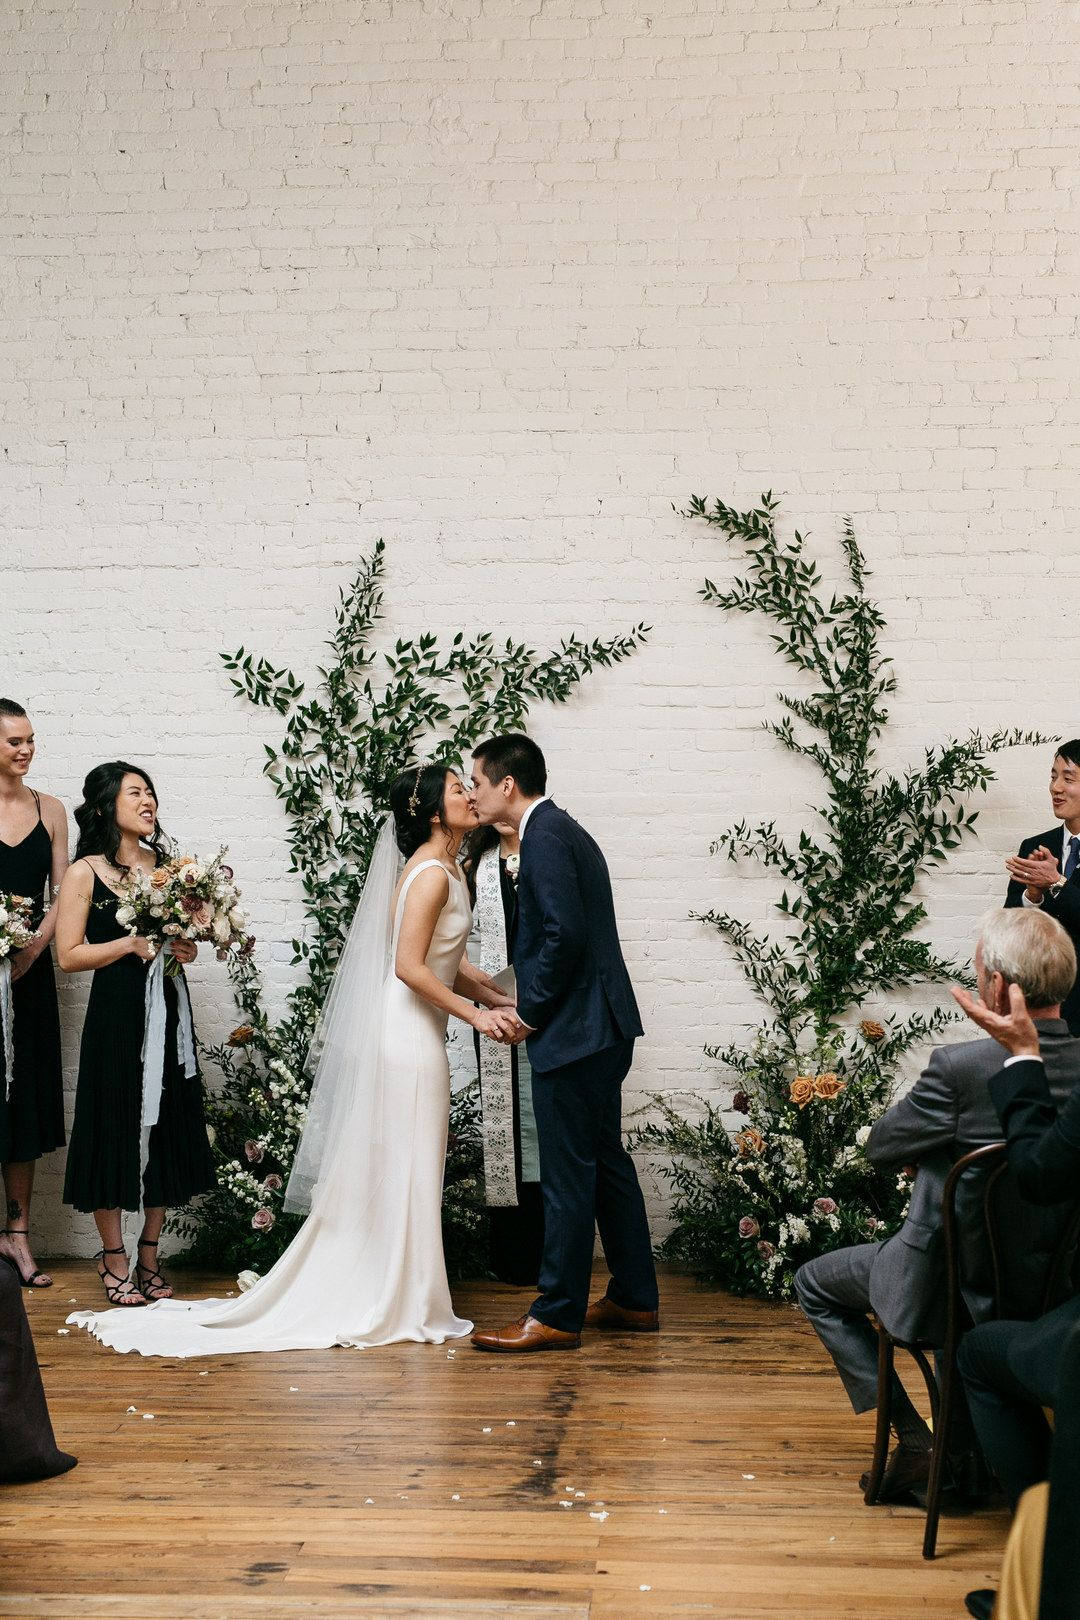 Modern Industrial Wedding At One Eleven East Austin Tx Photo Credit Marisa Albrecht Photo Wed Marisa Wedding Dress Industrial Wedding Proper Wedding